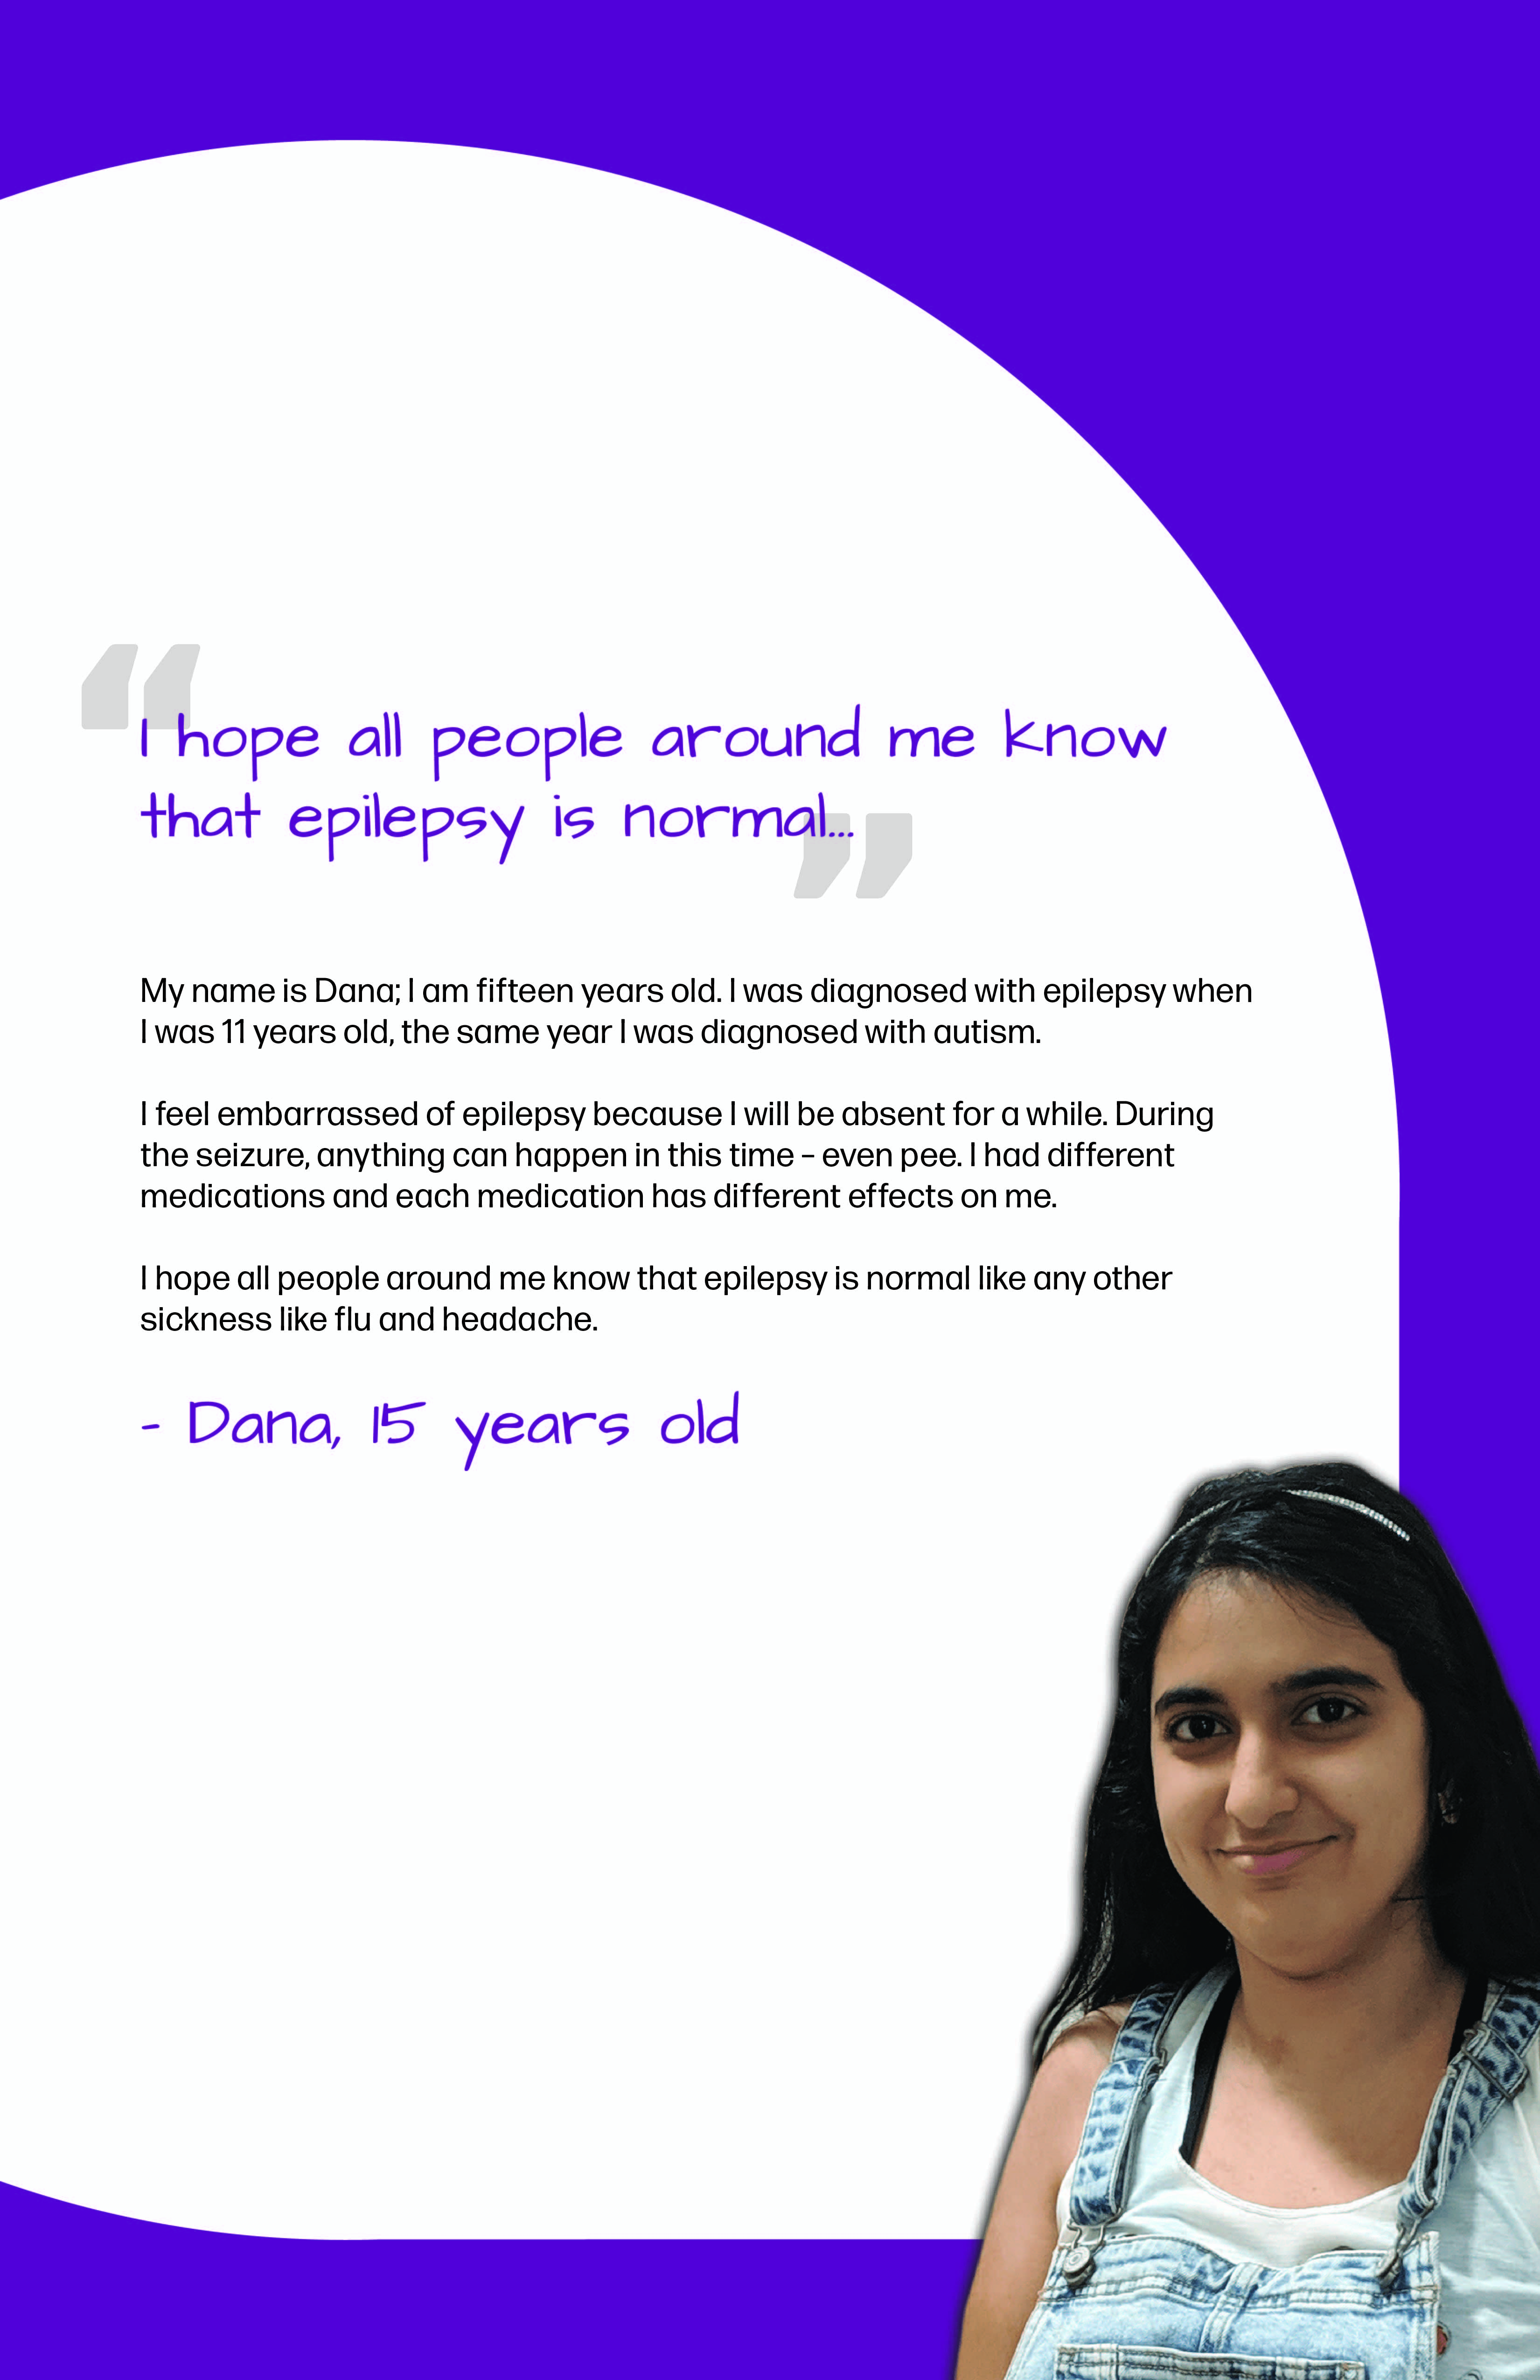 Dana's Epilepsy Perspective Images Club story poster